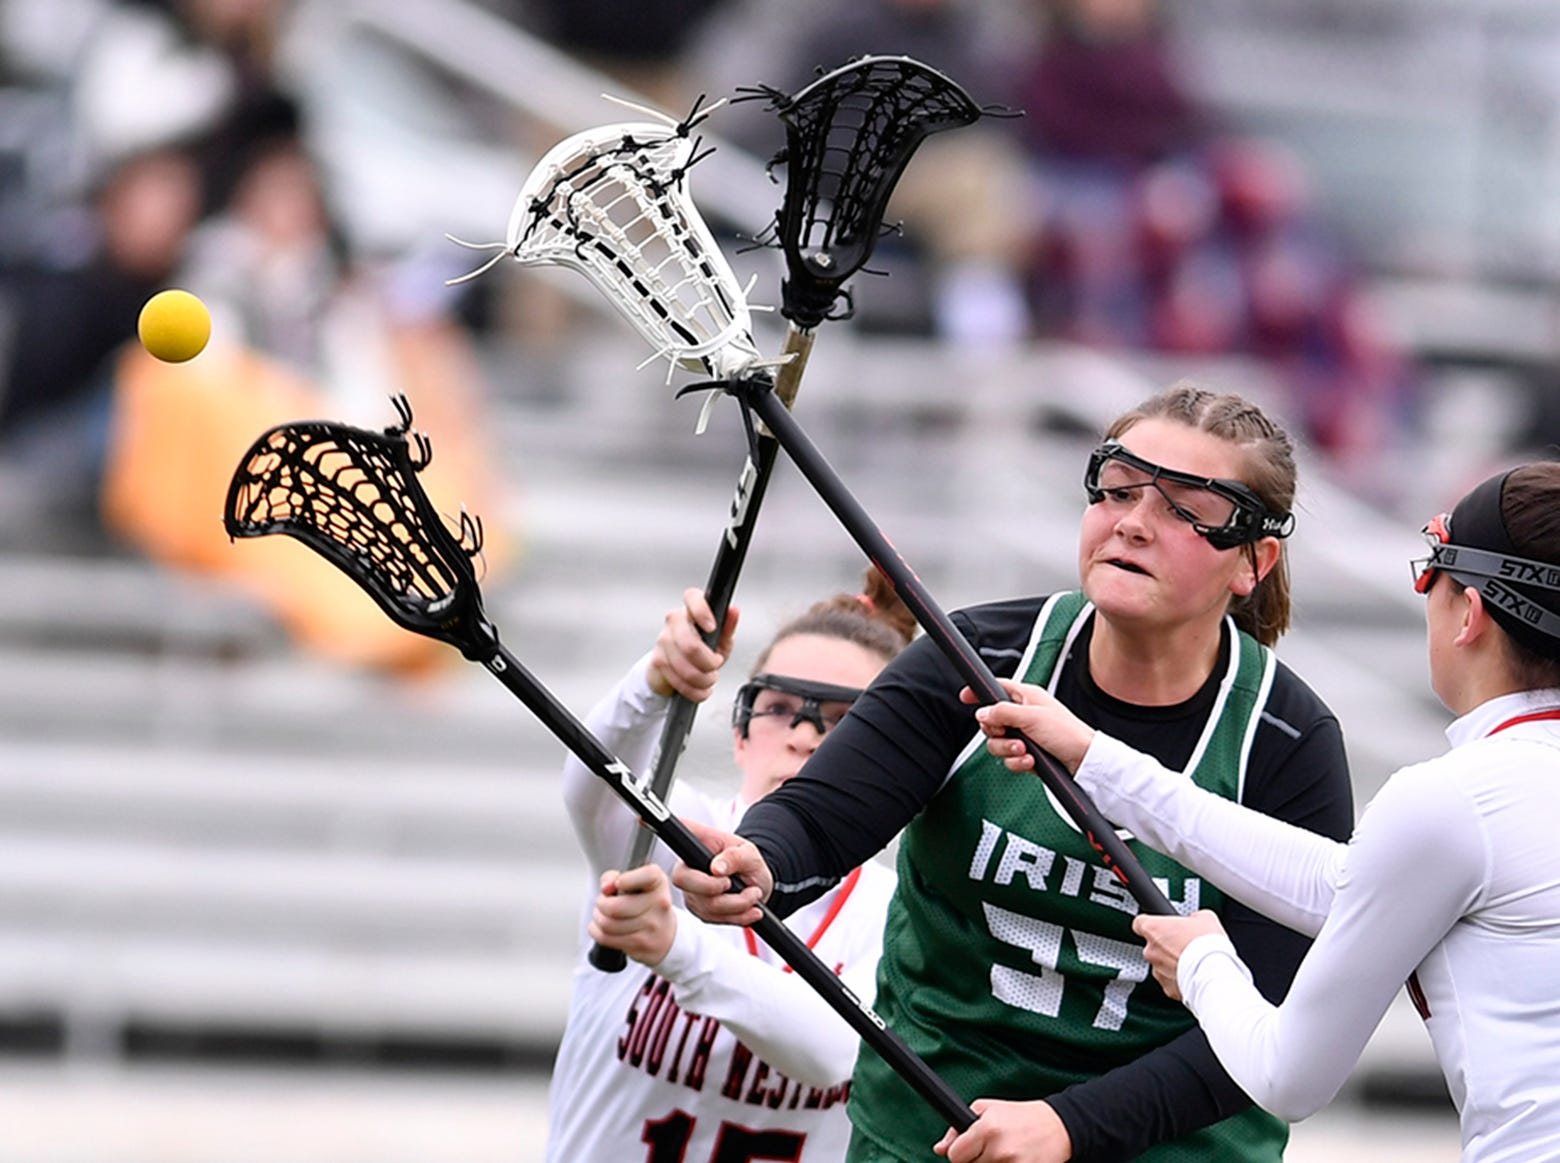 York Catholic's Ella Linthicum shoots and scores while covered by Jordan Gertz, left, and Ella Baker of South Western, Tuesday, April 2, 2019.John A. Pavoncello photo